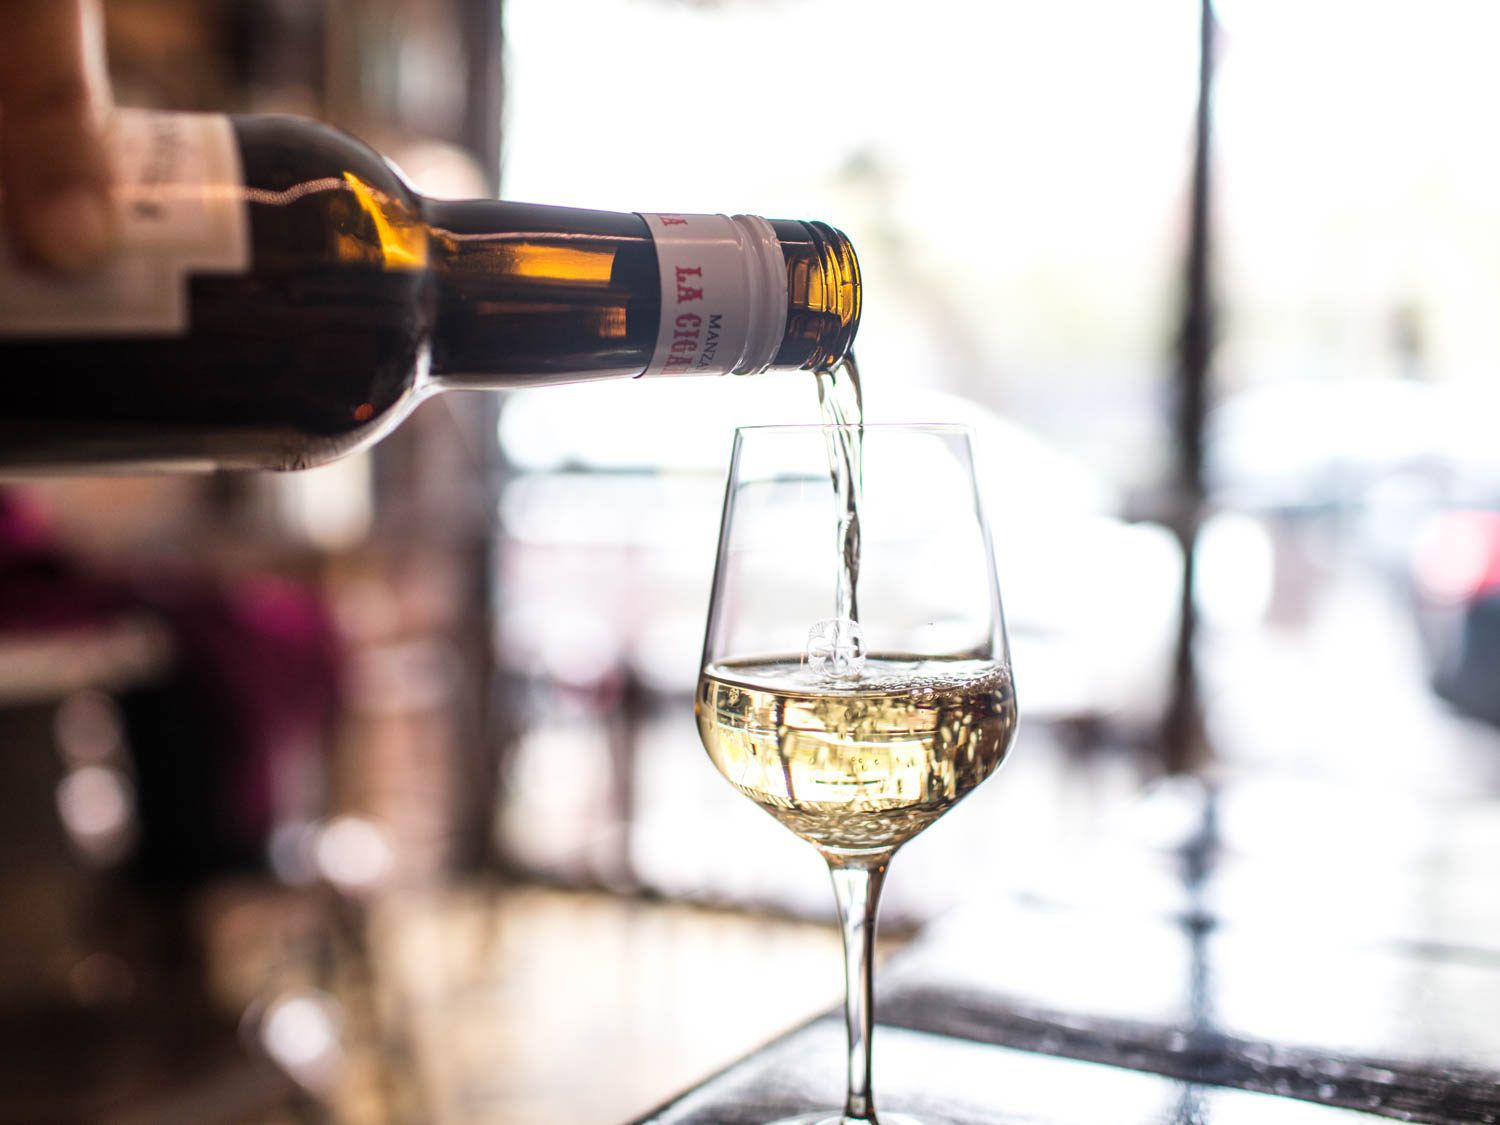 A hand pouring from a bottle of pale Manzanilla sherry into a wineglass